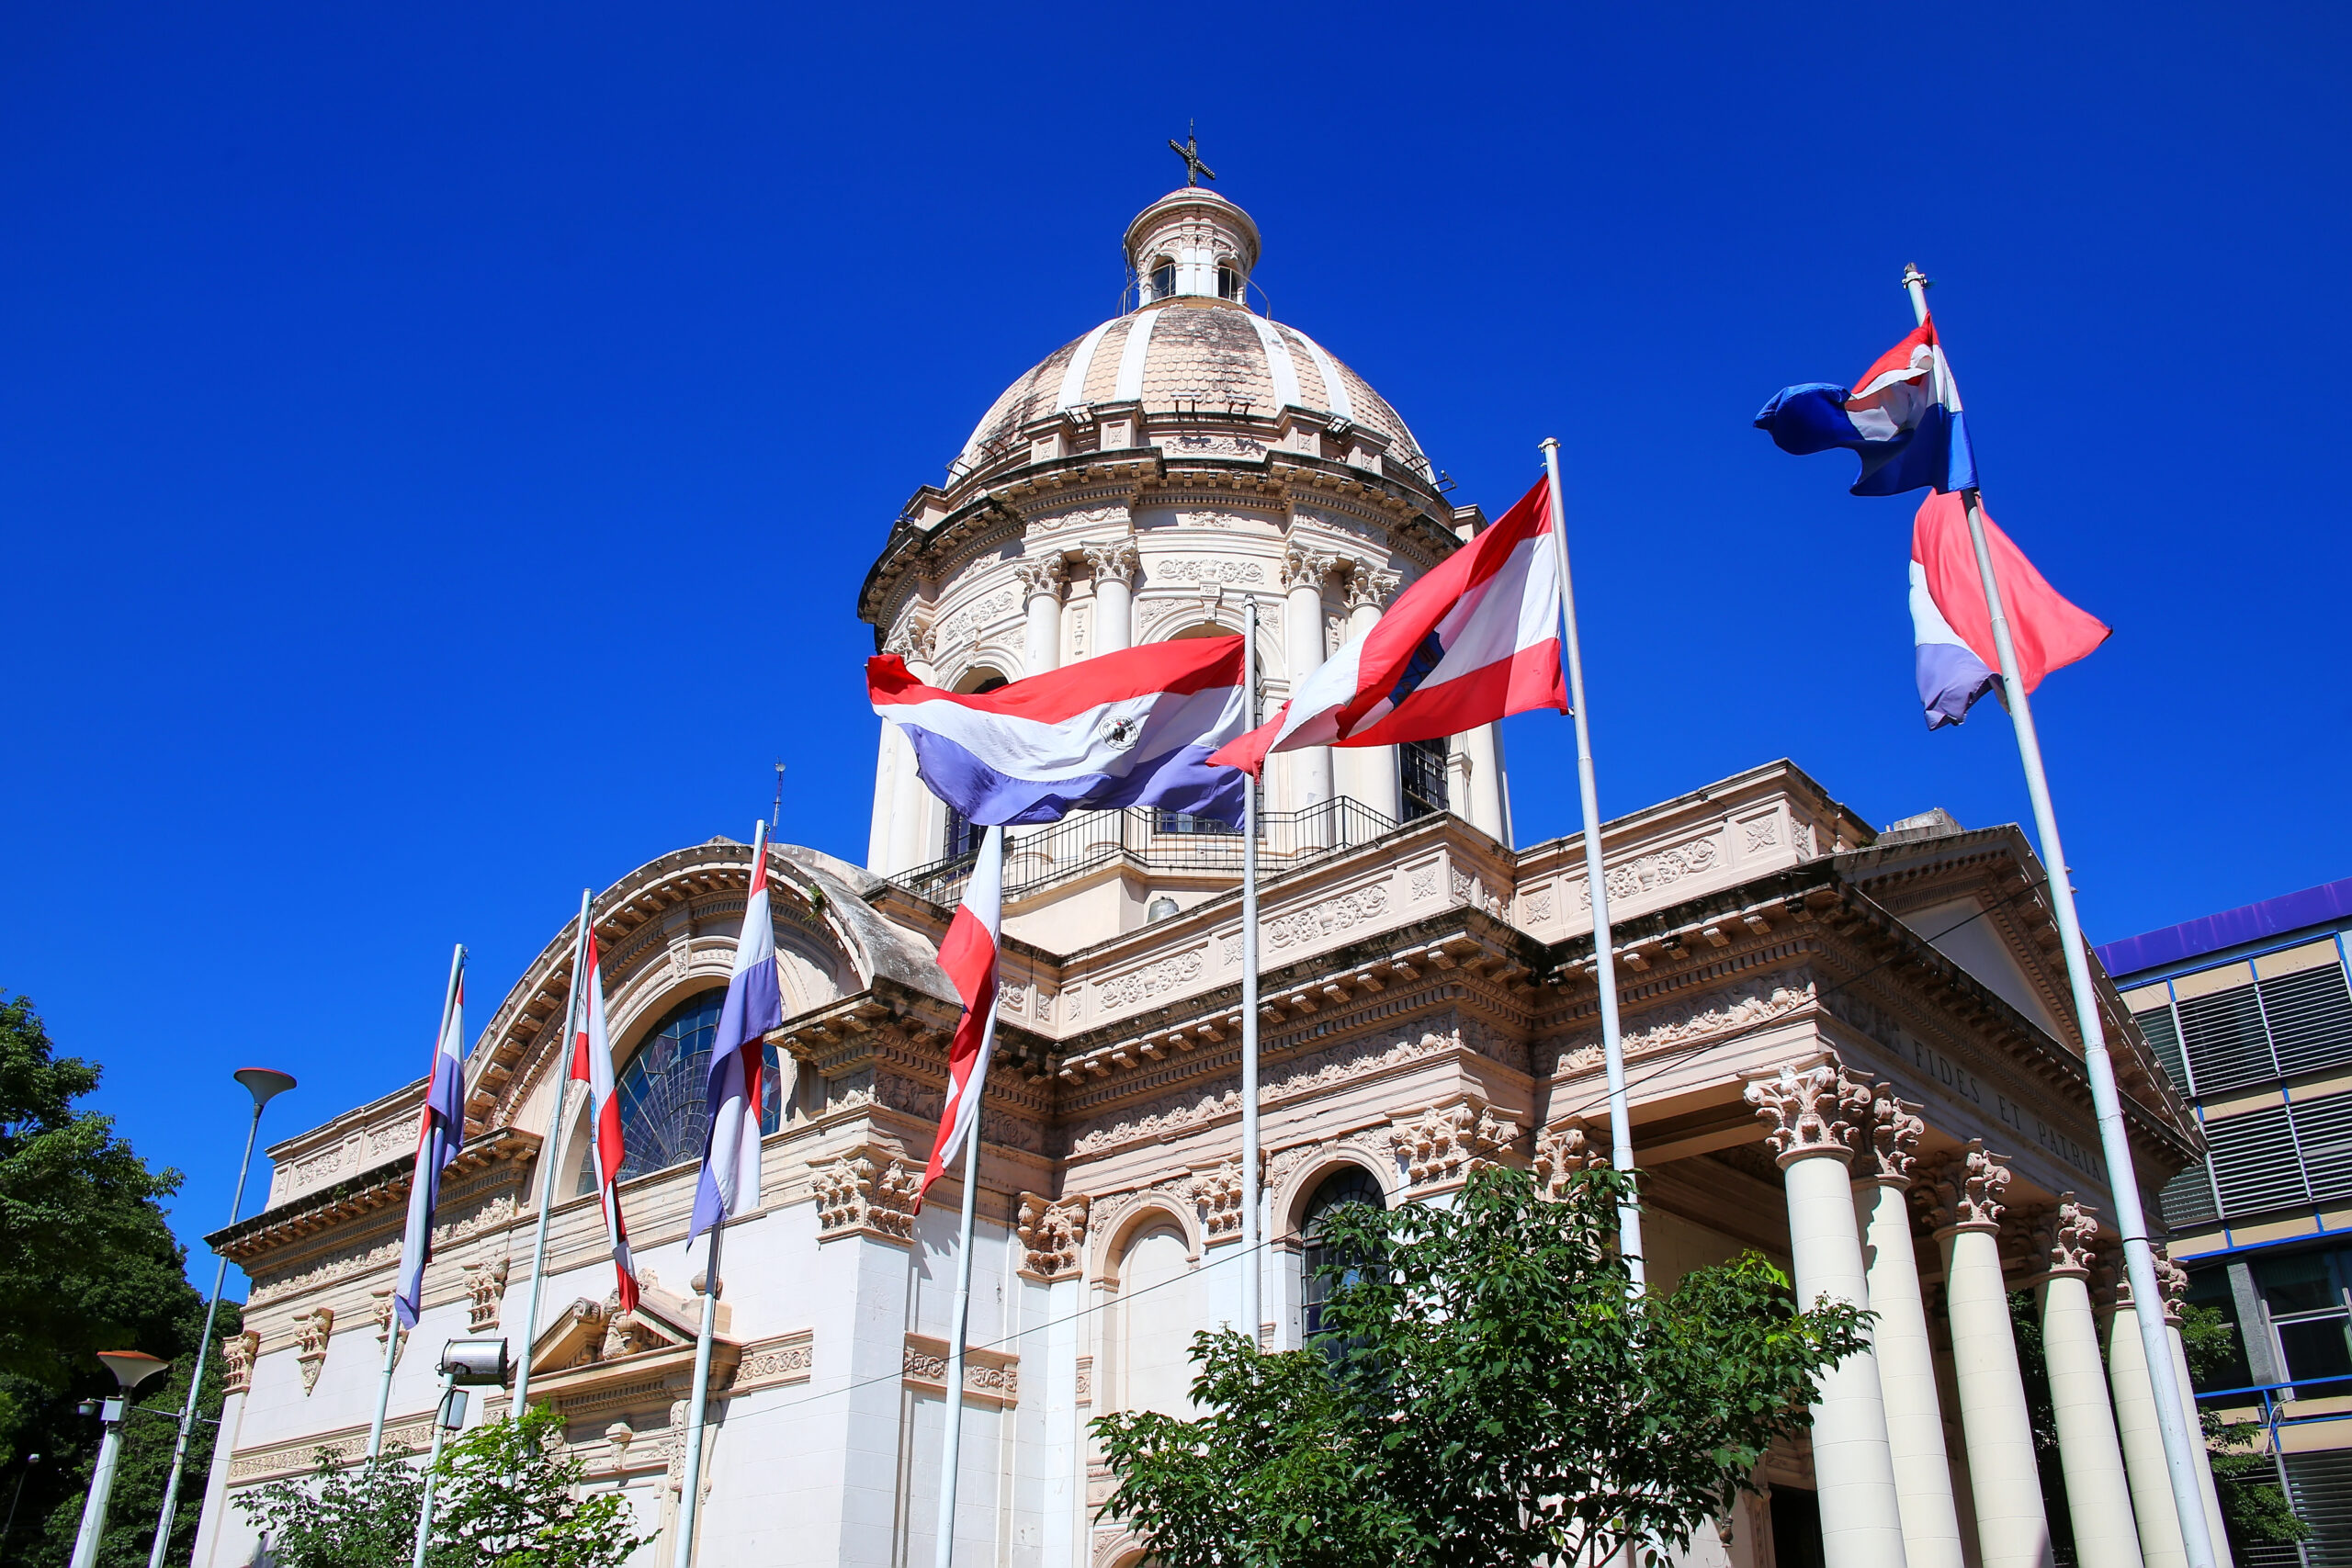 The National Pantheon Of The Heroes In Asuncion, Paraguay.